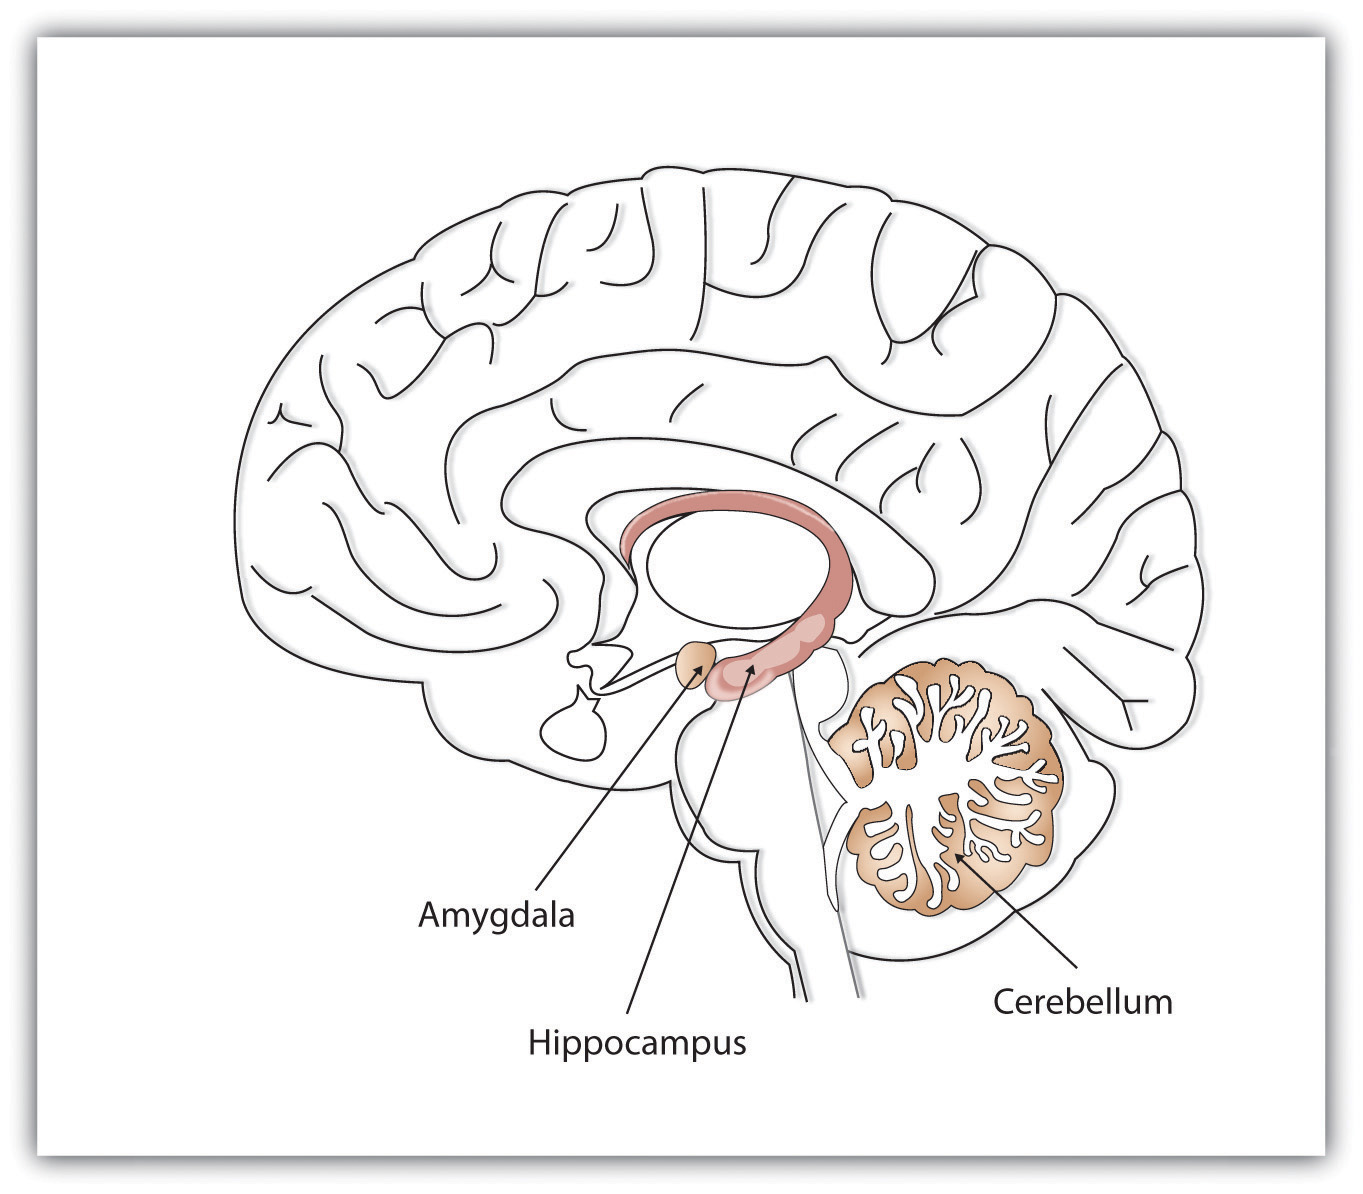 Schematic Image of Brain With Hippocampus, Amygdala, and Cerebellum Highlighted